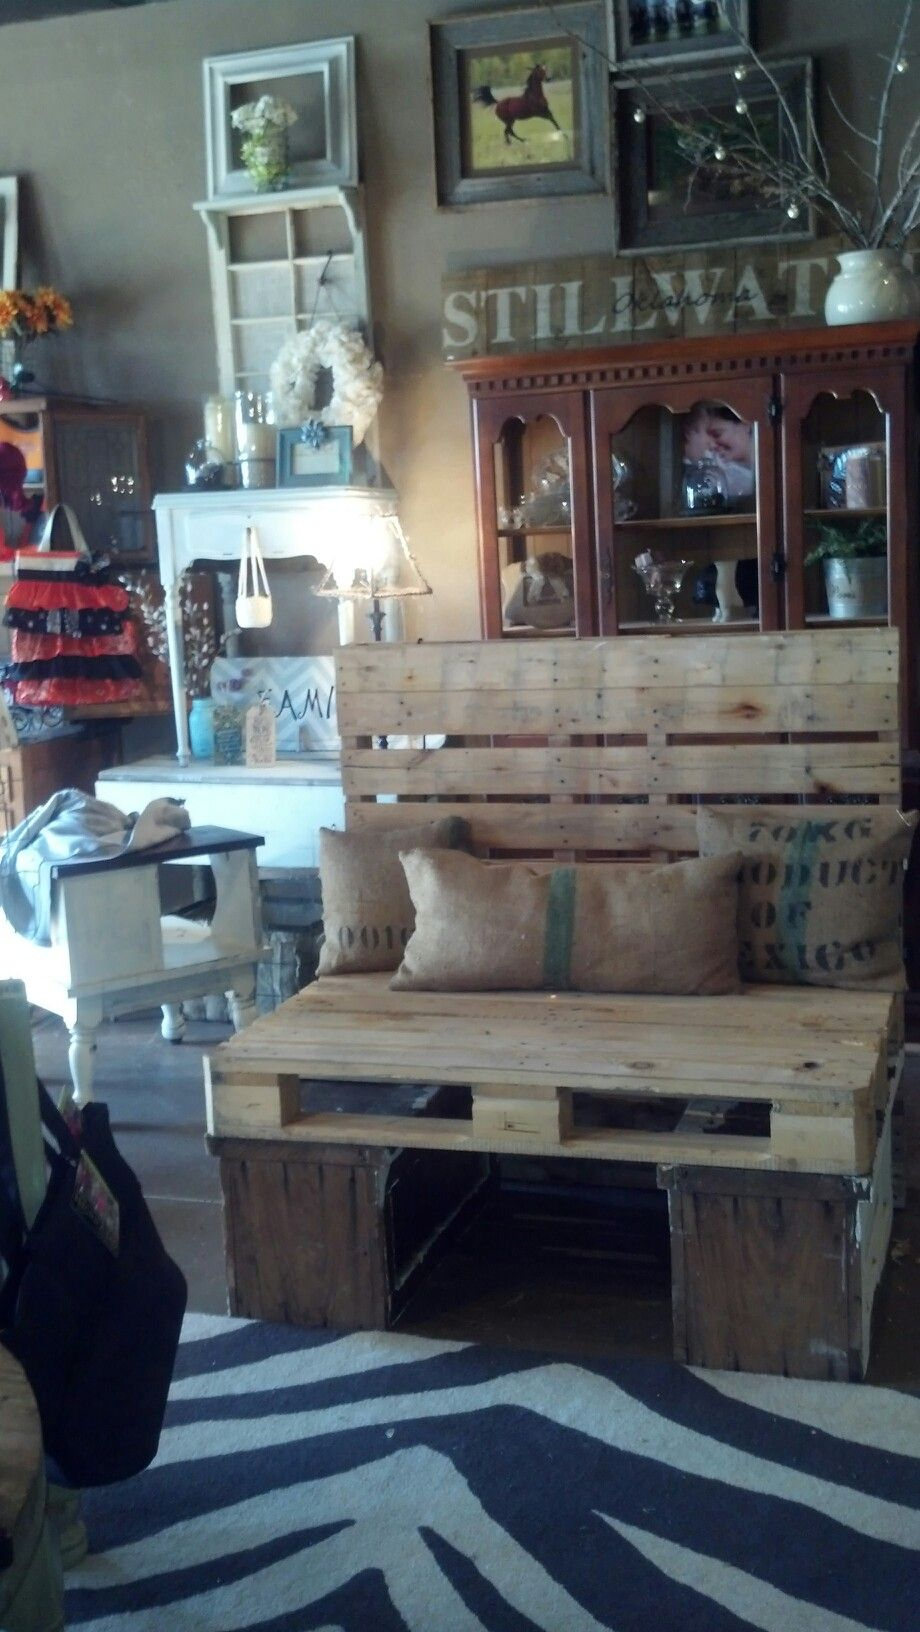 Pallet bench for display sitting area~what a great idea for the husbands to have a place to rest while the wives are shopping in my booth. Could even be assembled @Sarah Jarrett the day of! ; )